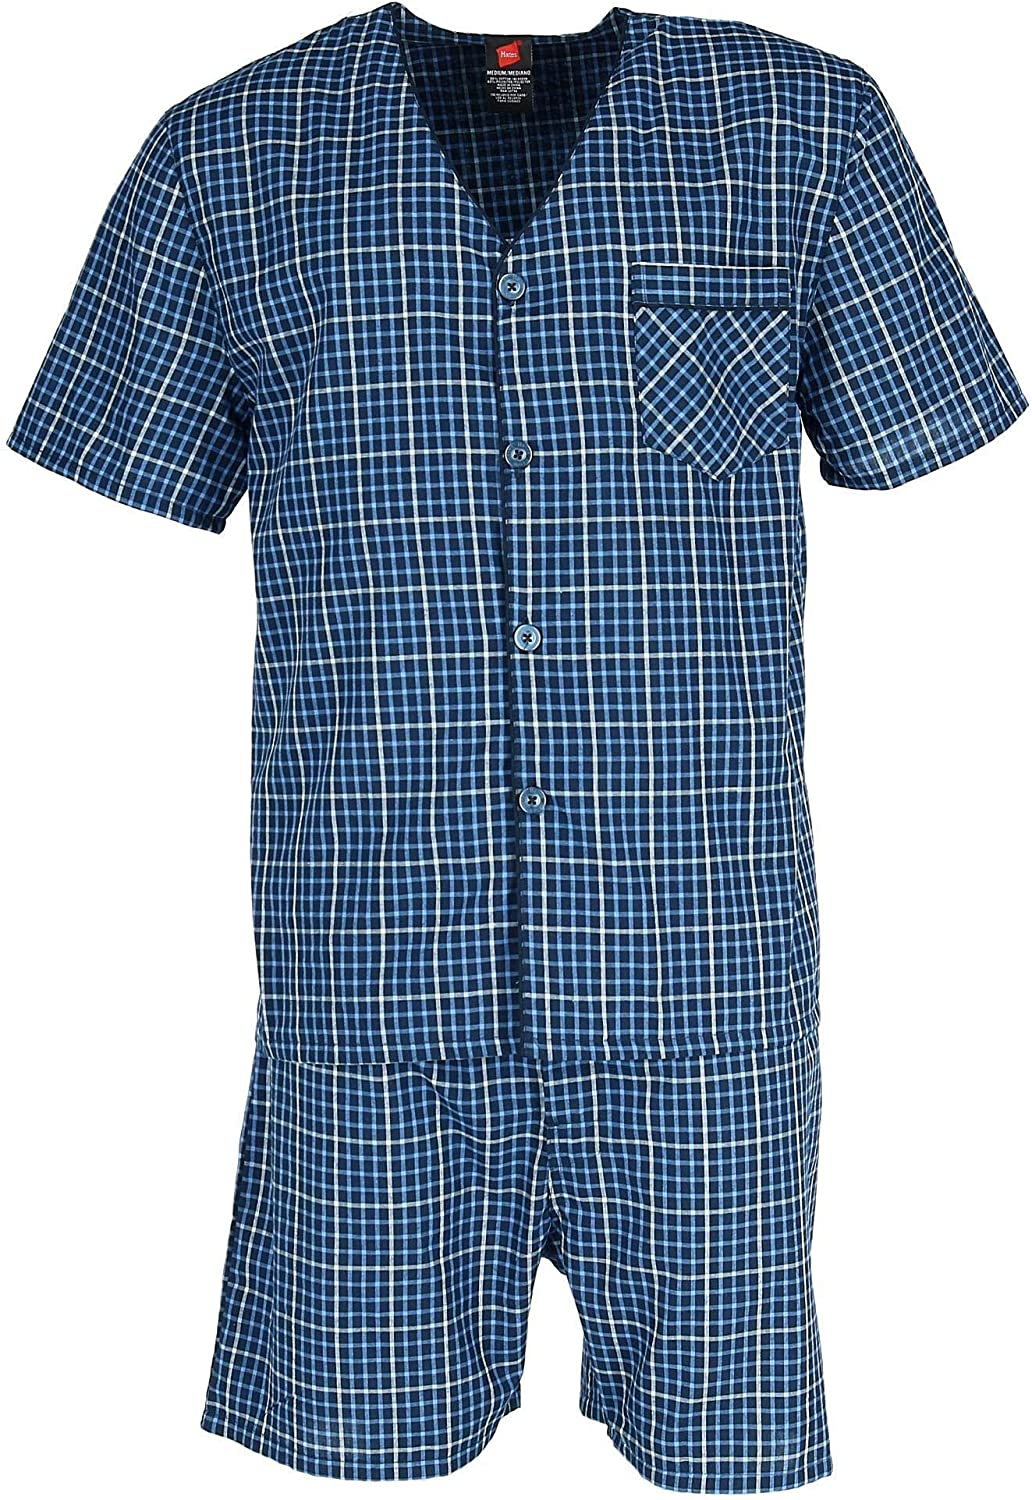 Hanes Mens Short Sleeve Short Leg Pajama Set